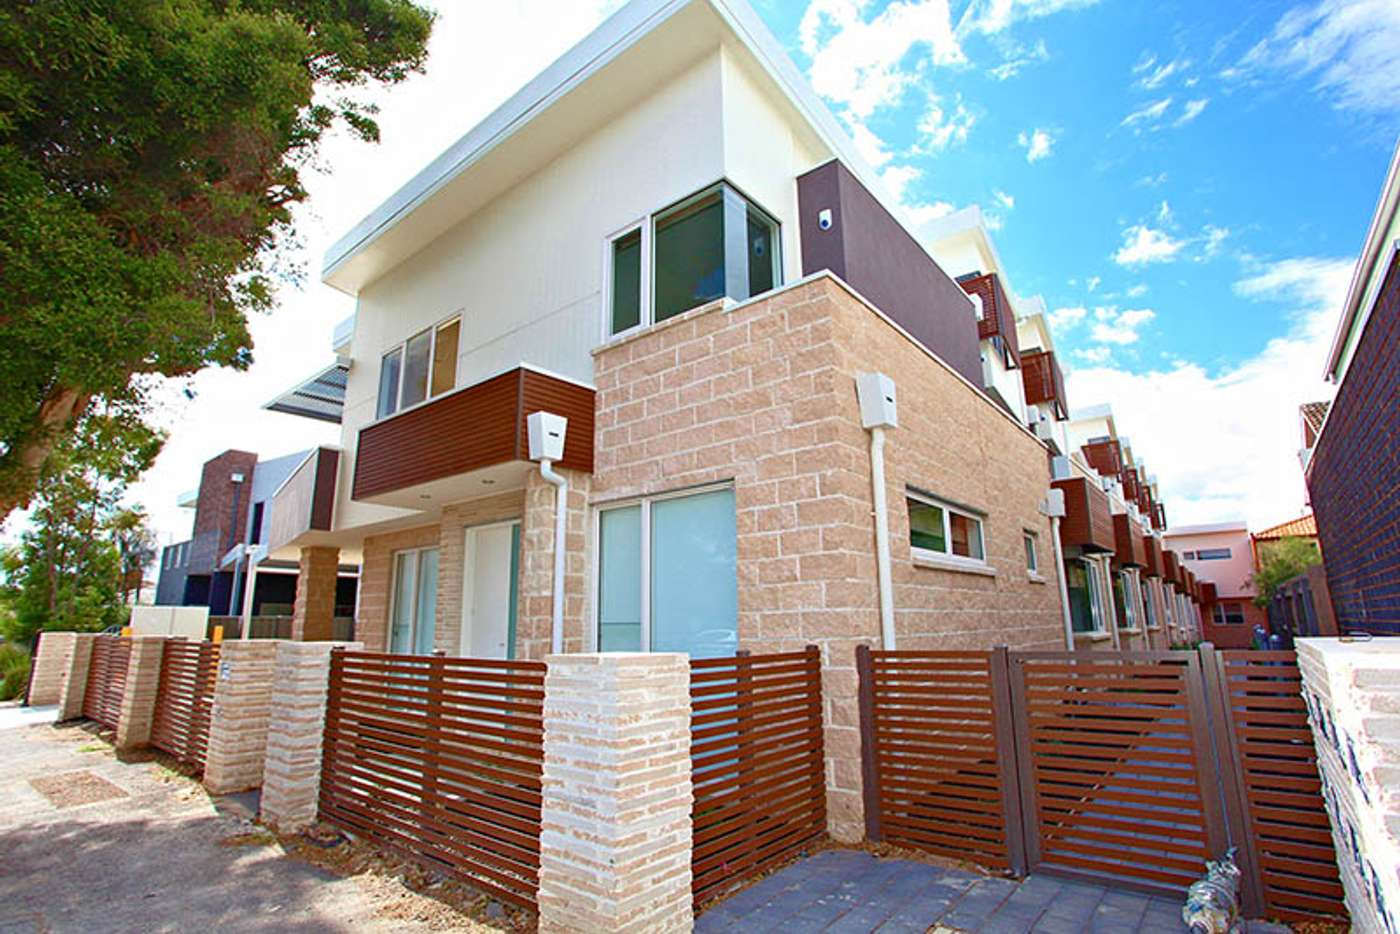 Main view of Homely apartment listing, 7/2 Cumming Street, Brunswick VIC 3056